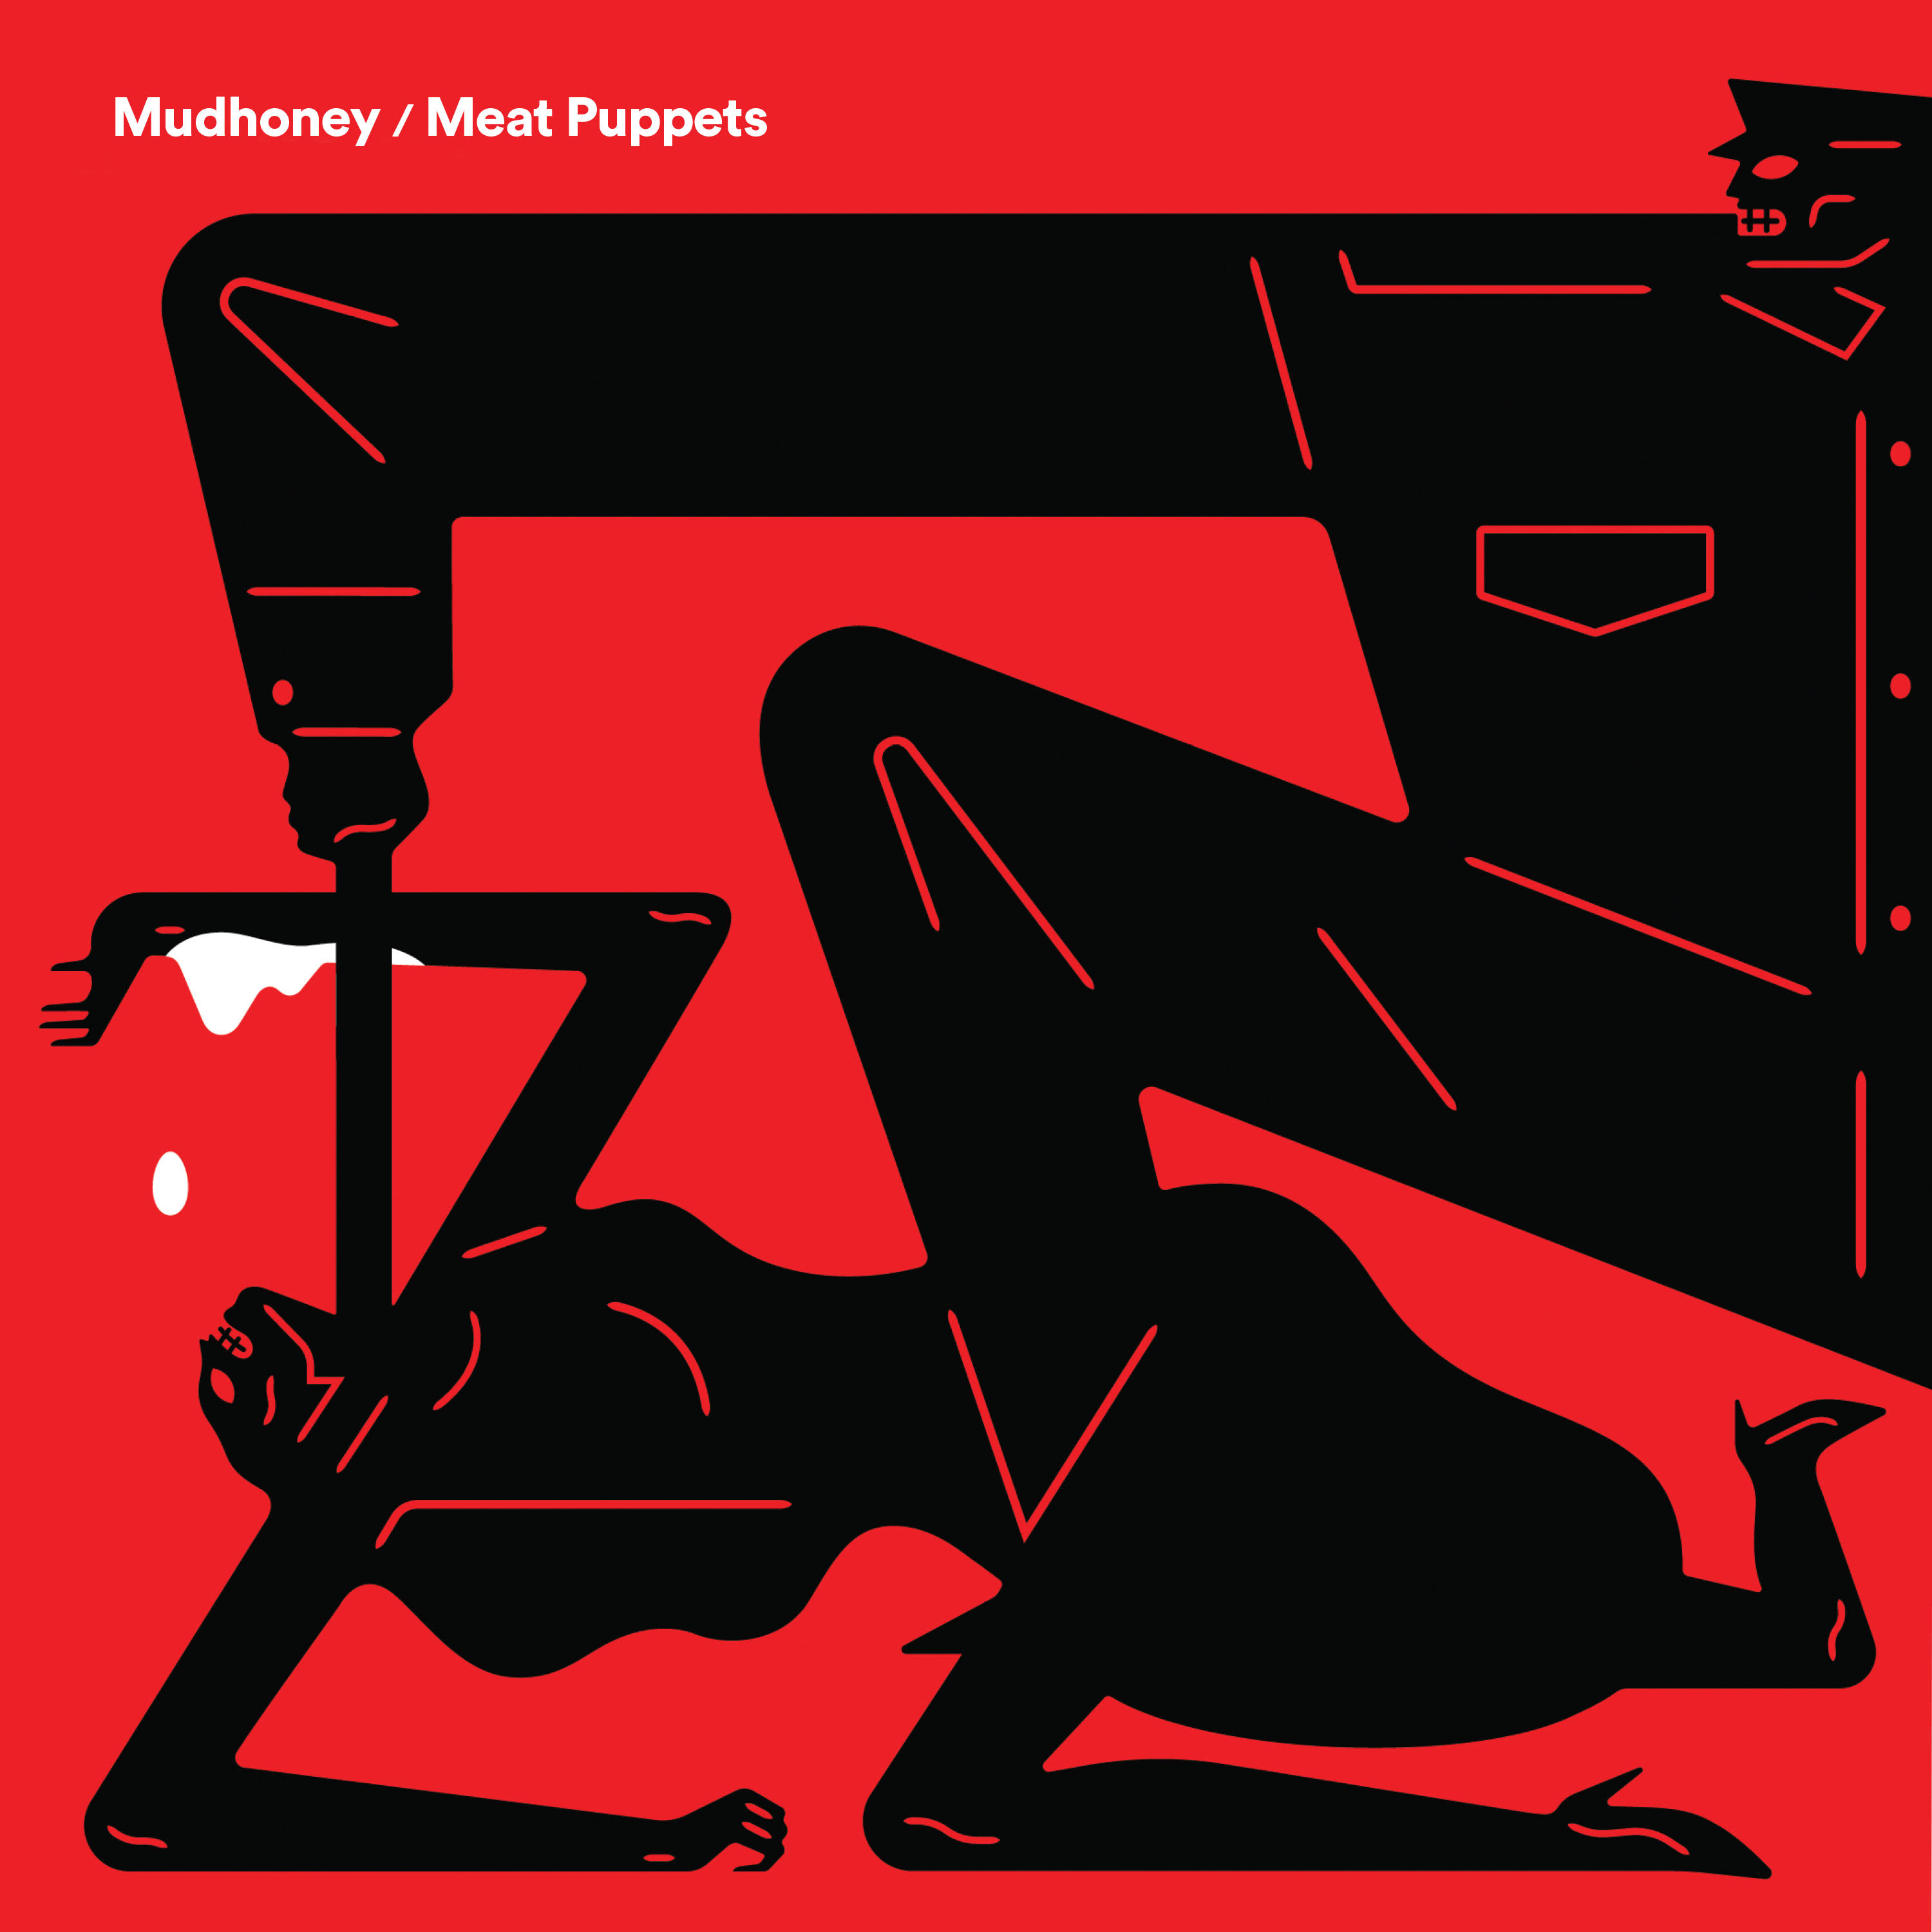 Mudhoney / Meat Puppets - Warning / One Of These Days (Rsd) [Record Store Day] [RSD Drops 2021]